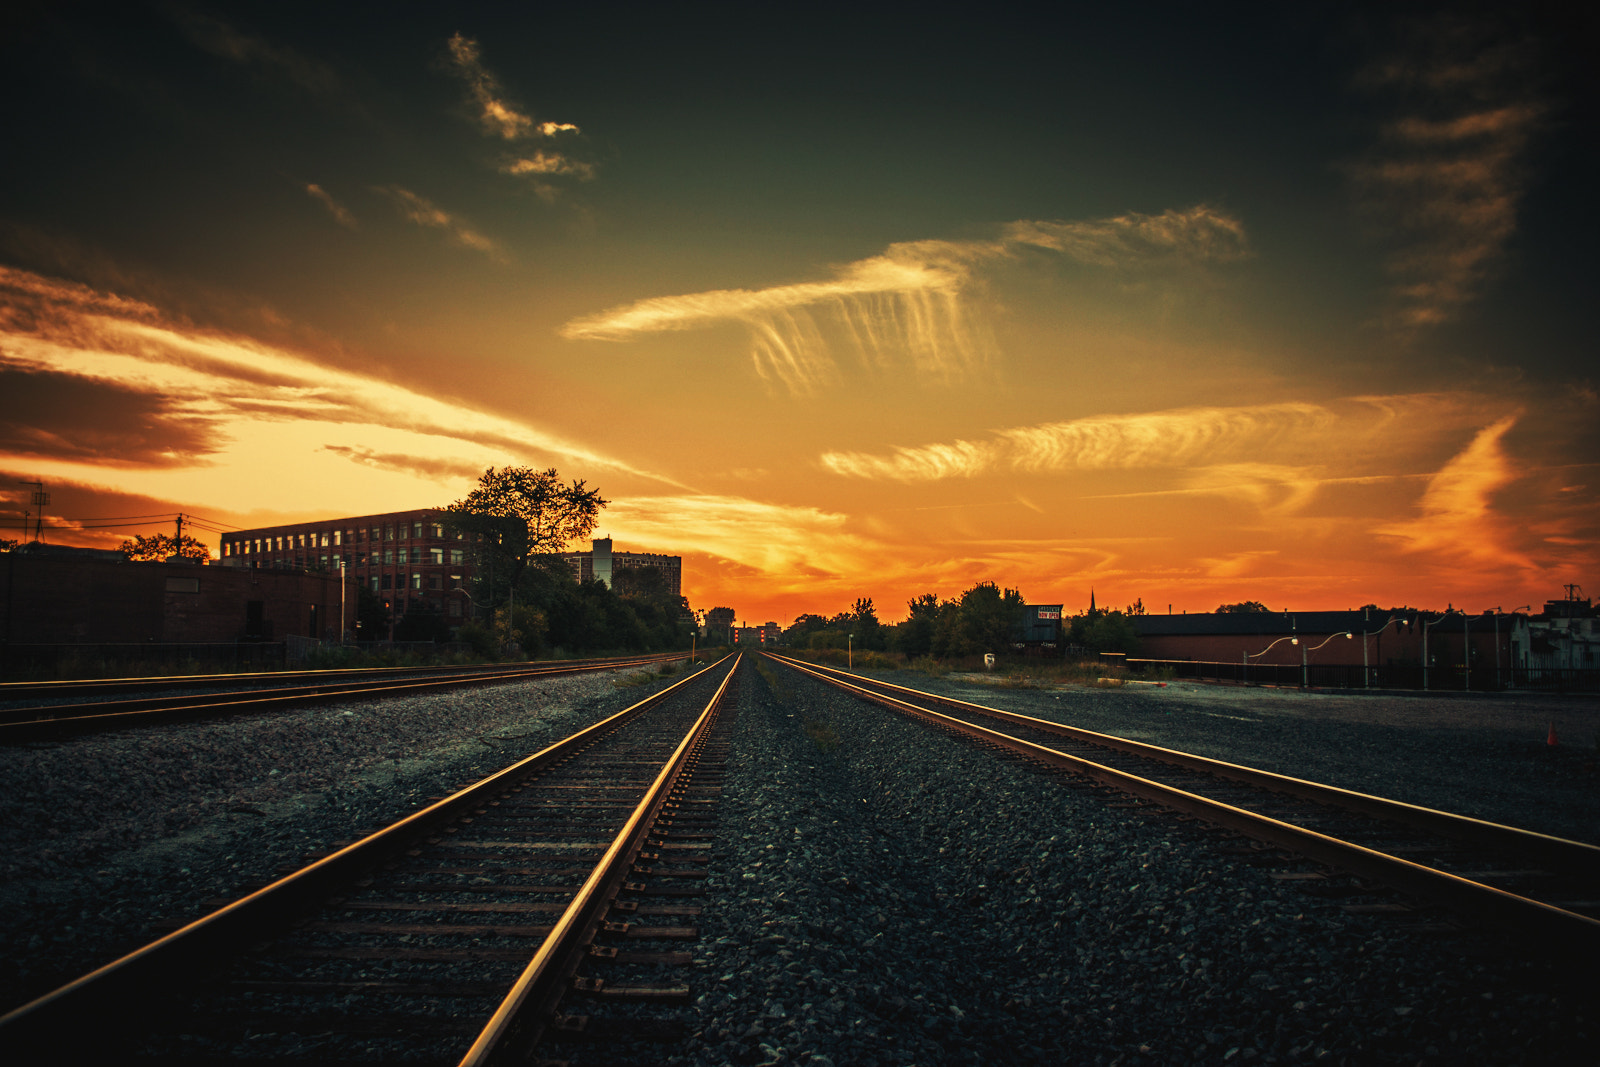 Photograph Railside Sunset by Ashton Pal on 500px